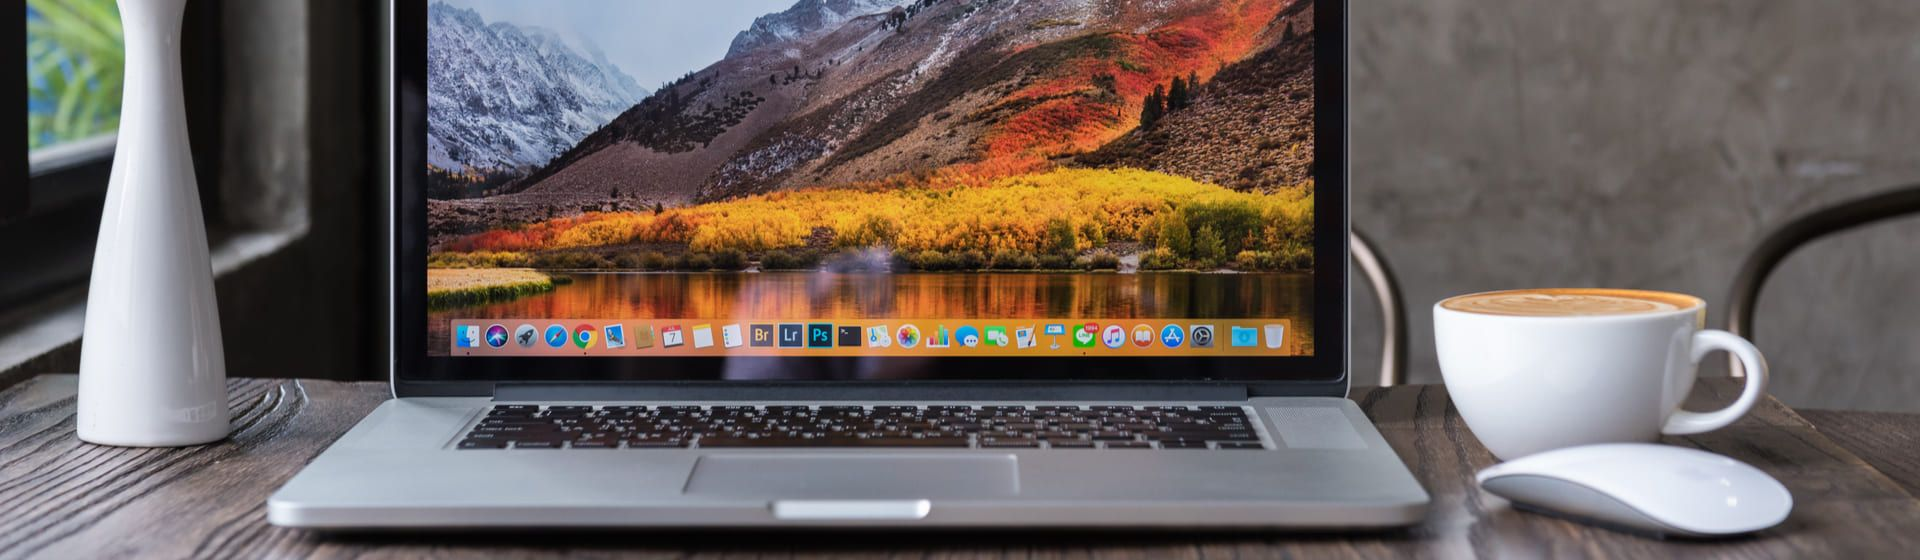 MacBook na Black Friday 2020: 5 notebooks da Apple para ficar de olho